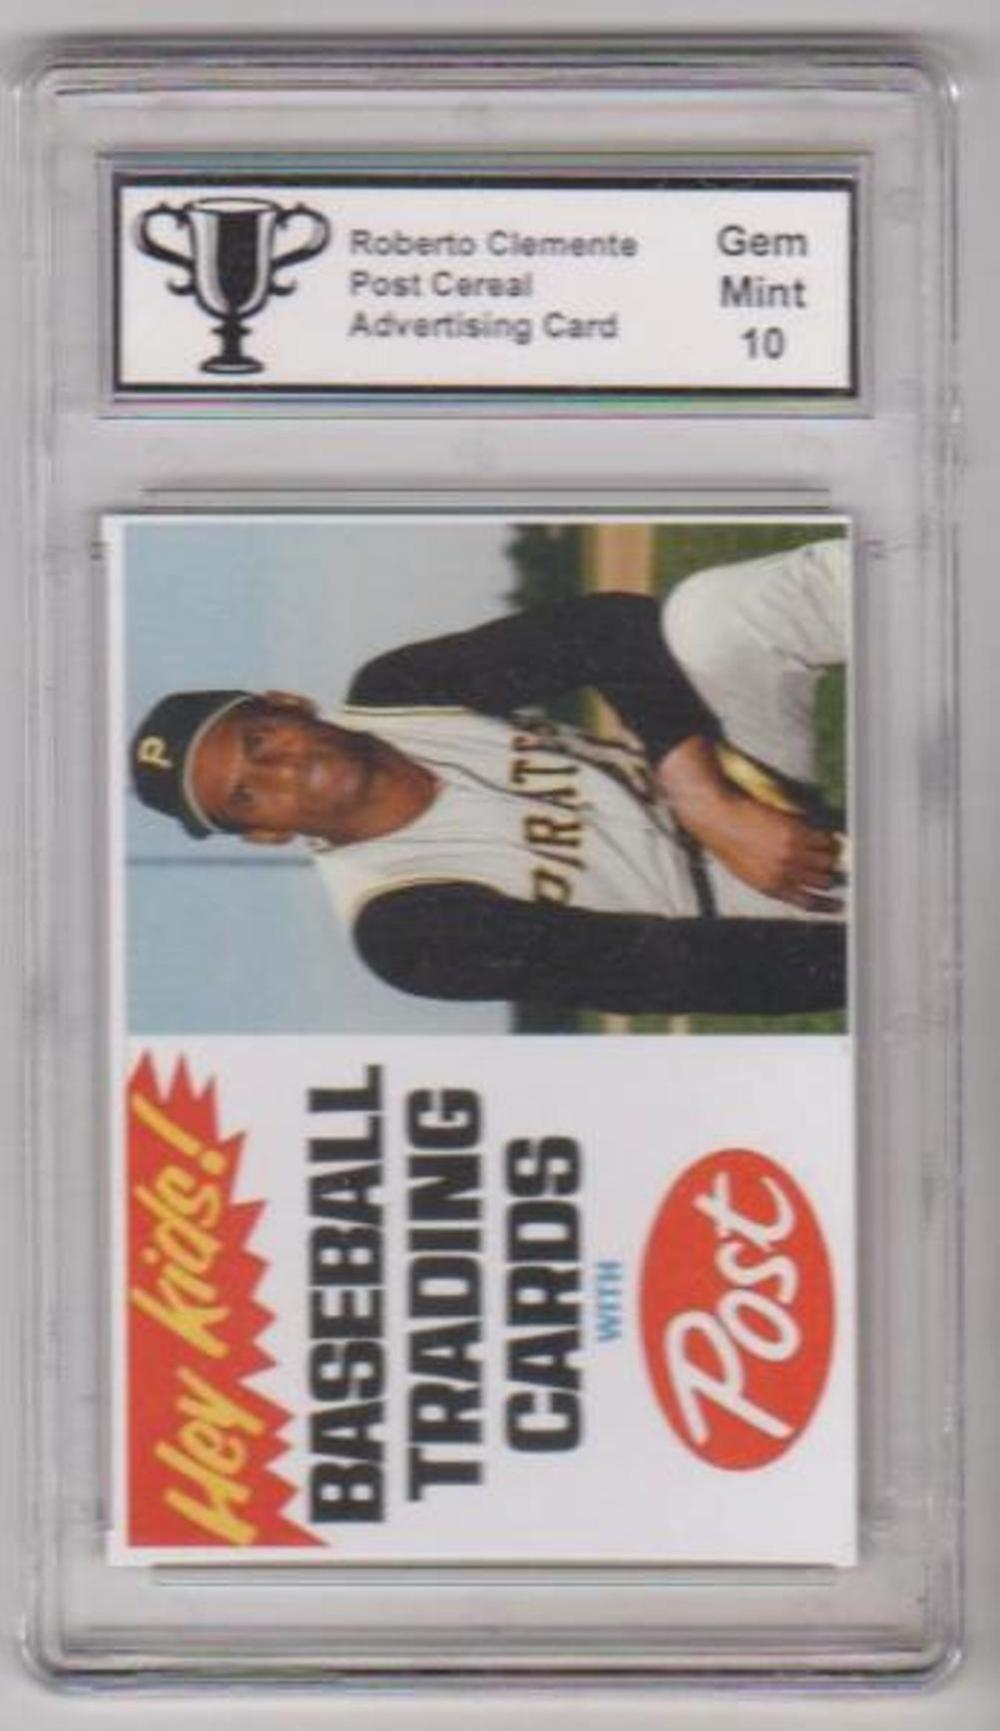 Graded Gem Mint 10 Roberto Clemente Post Cereal Advertising Promo Card